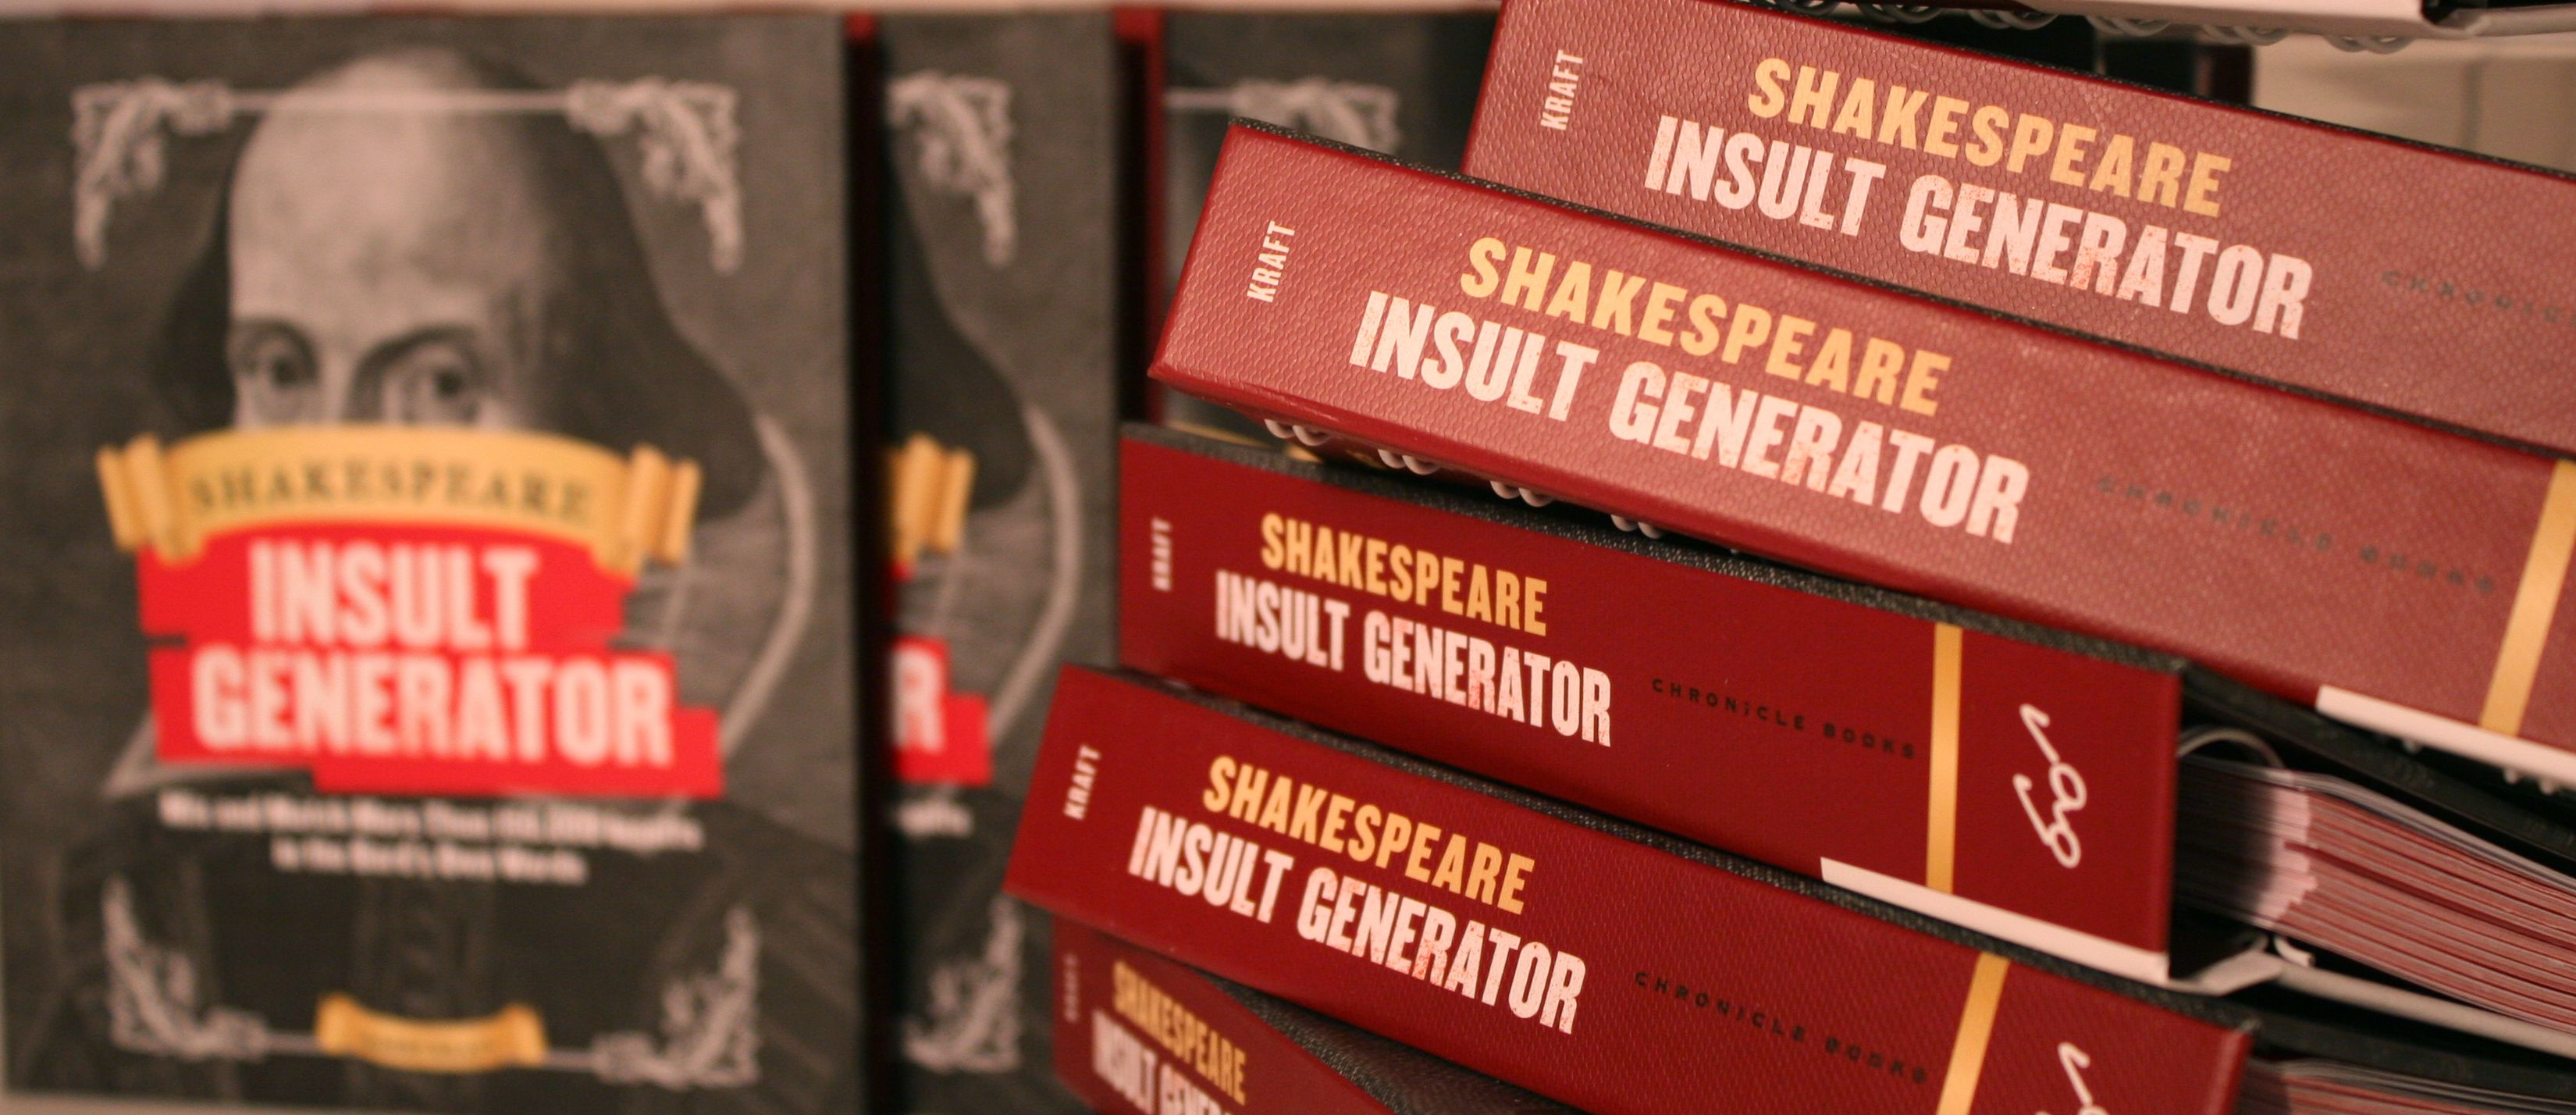 Need to insult someone in a Shakespearean way? Mix and match